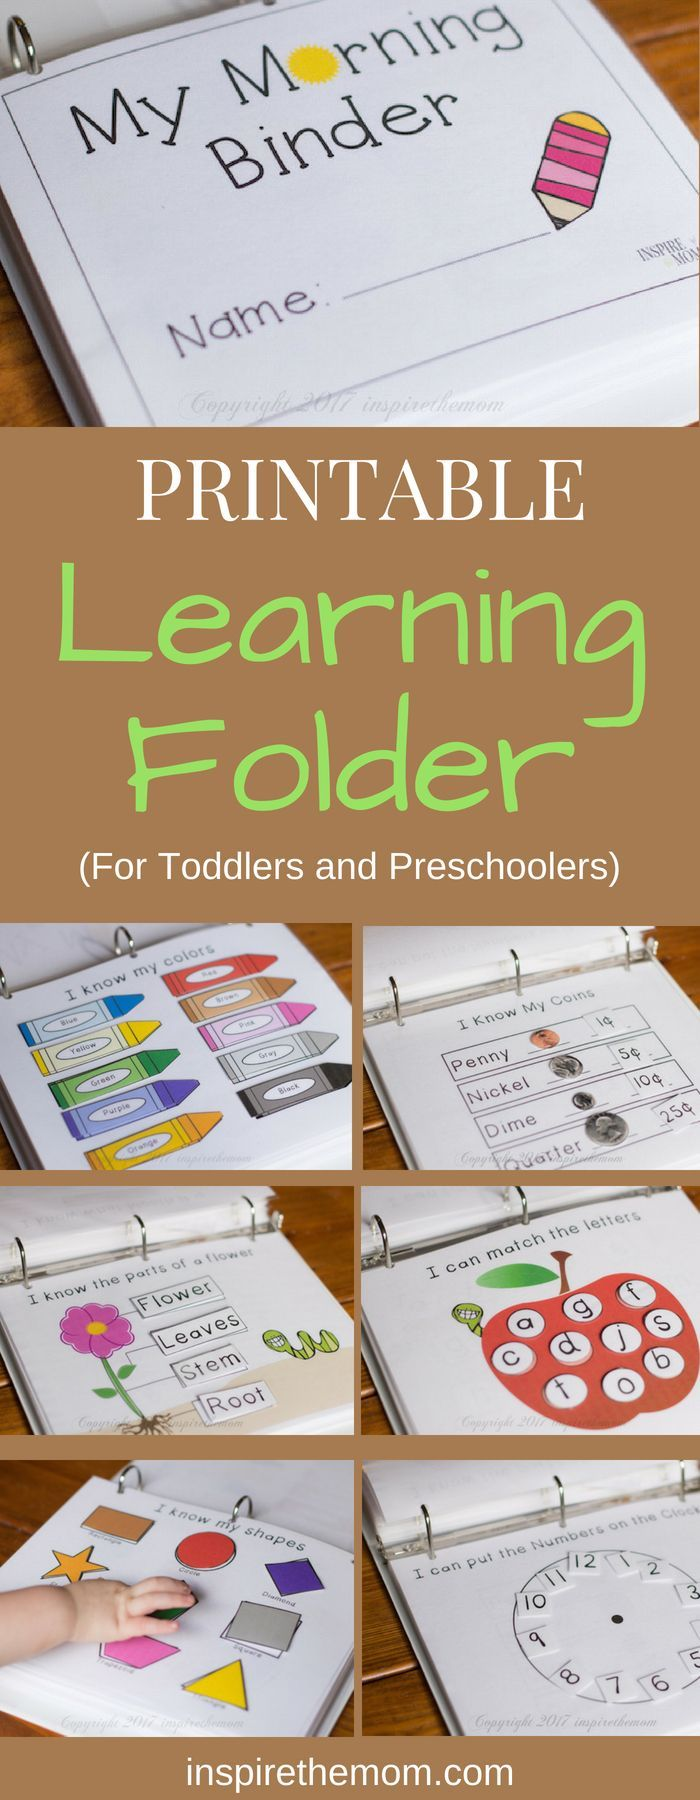 Printable Learning Folder for the Early Years - #activities #Early #Folder #Learning #Printable #Years #preschoolers